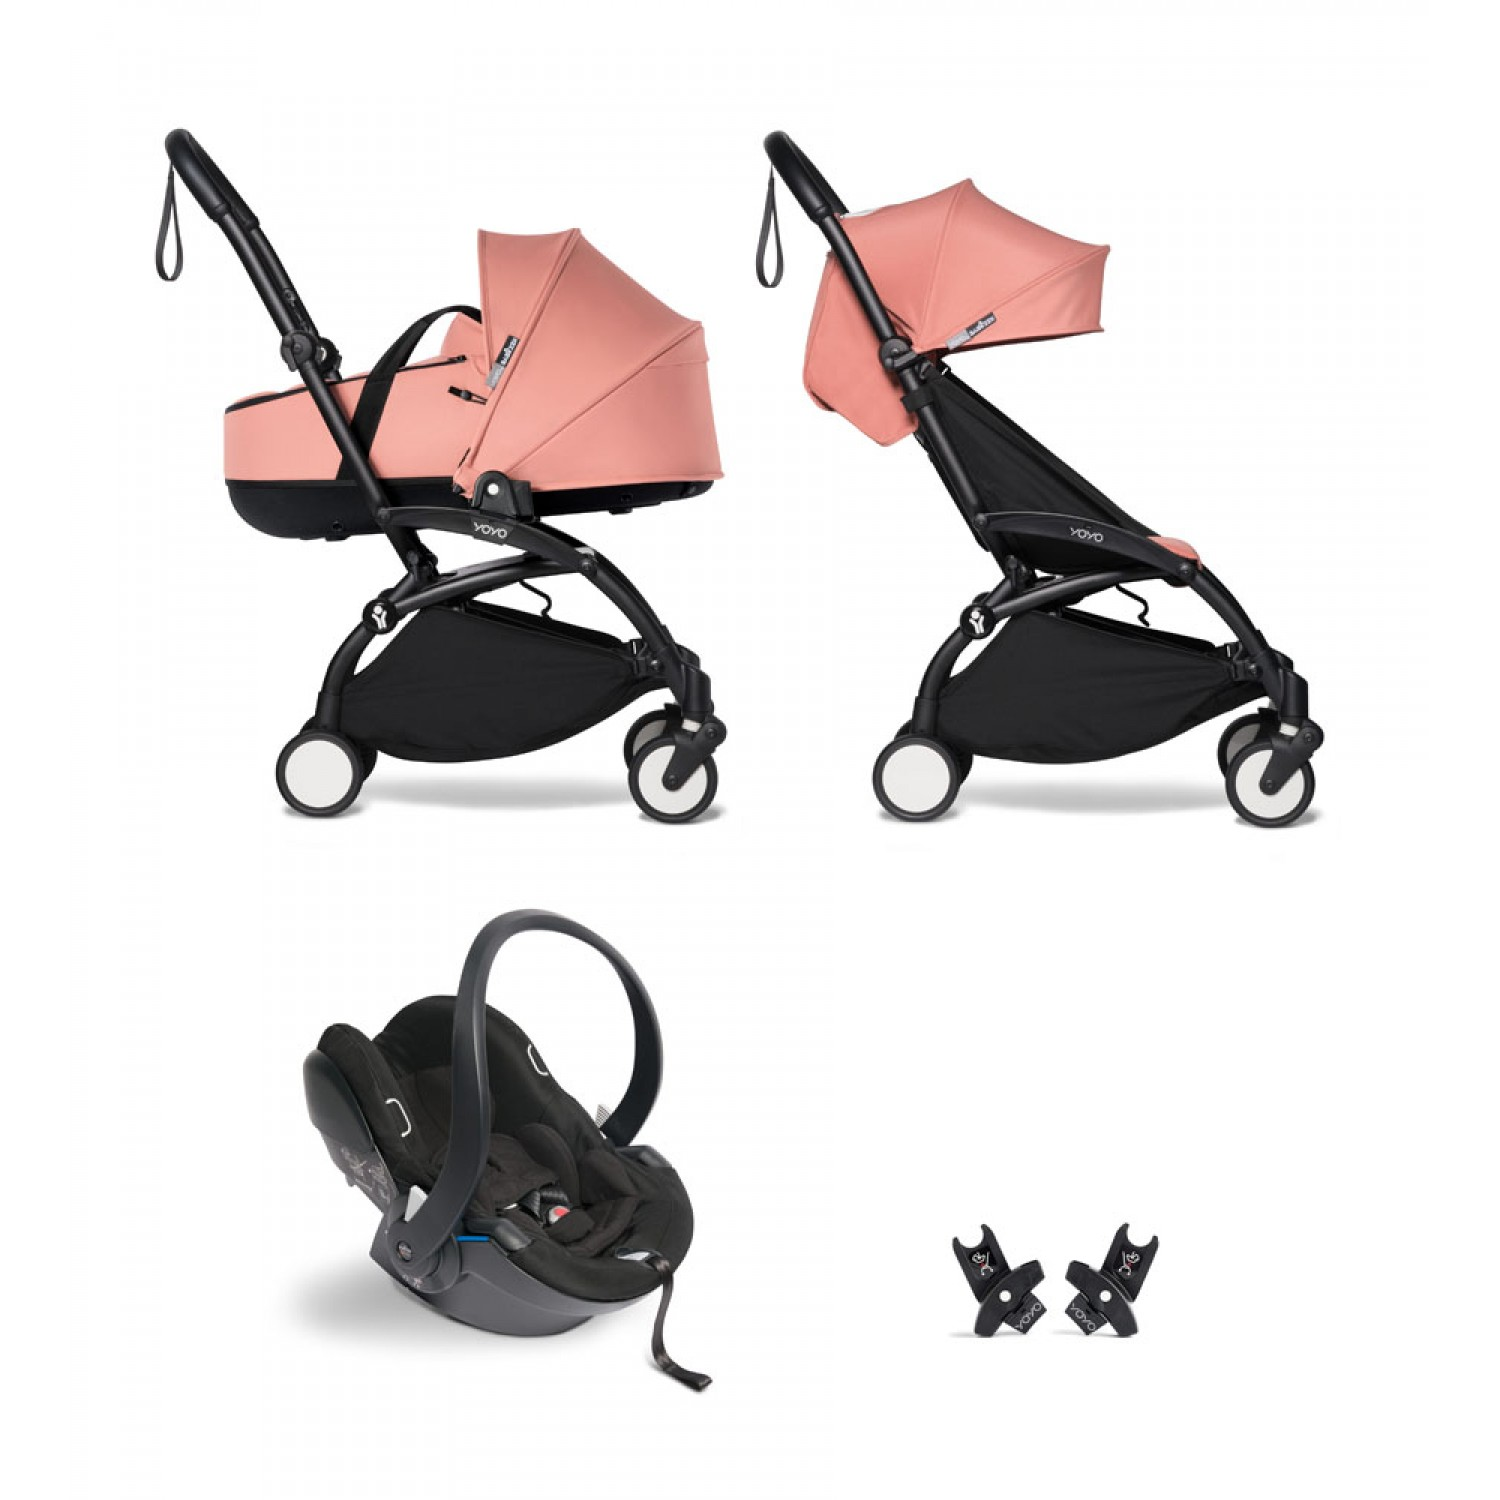 All-in-one BABYZEN stroller YOYO2 bassinet, car seat and 6+  Black Frame | Ginger